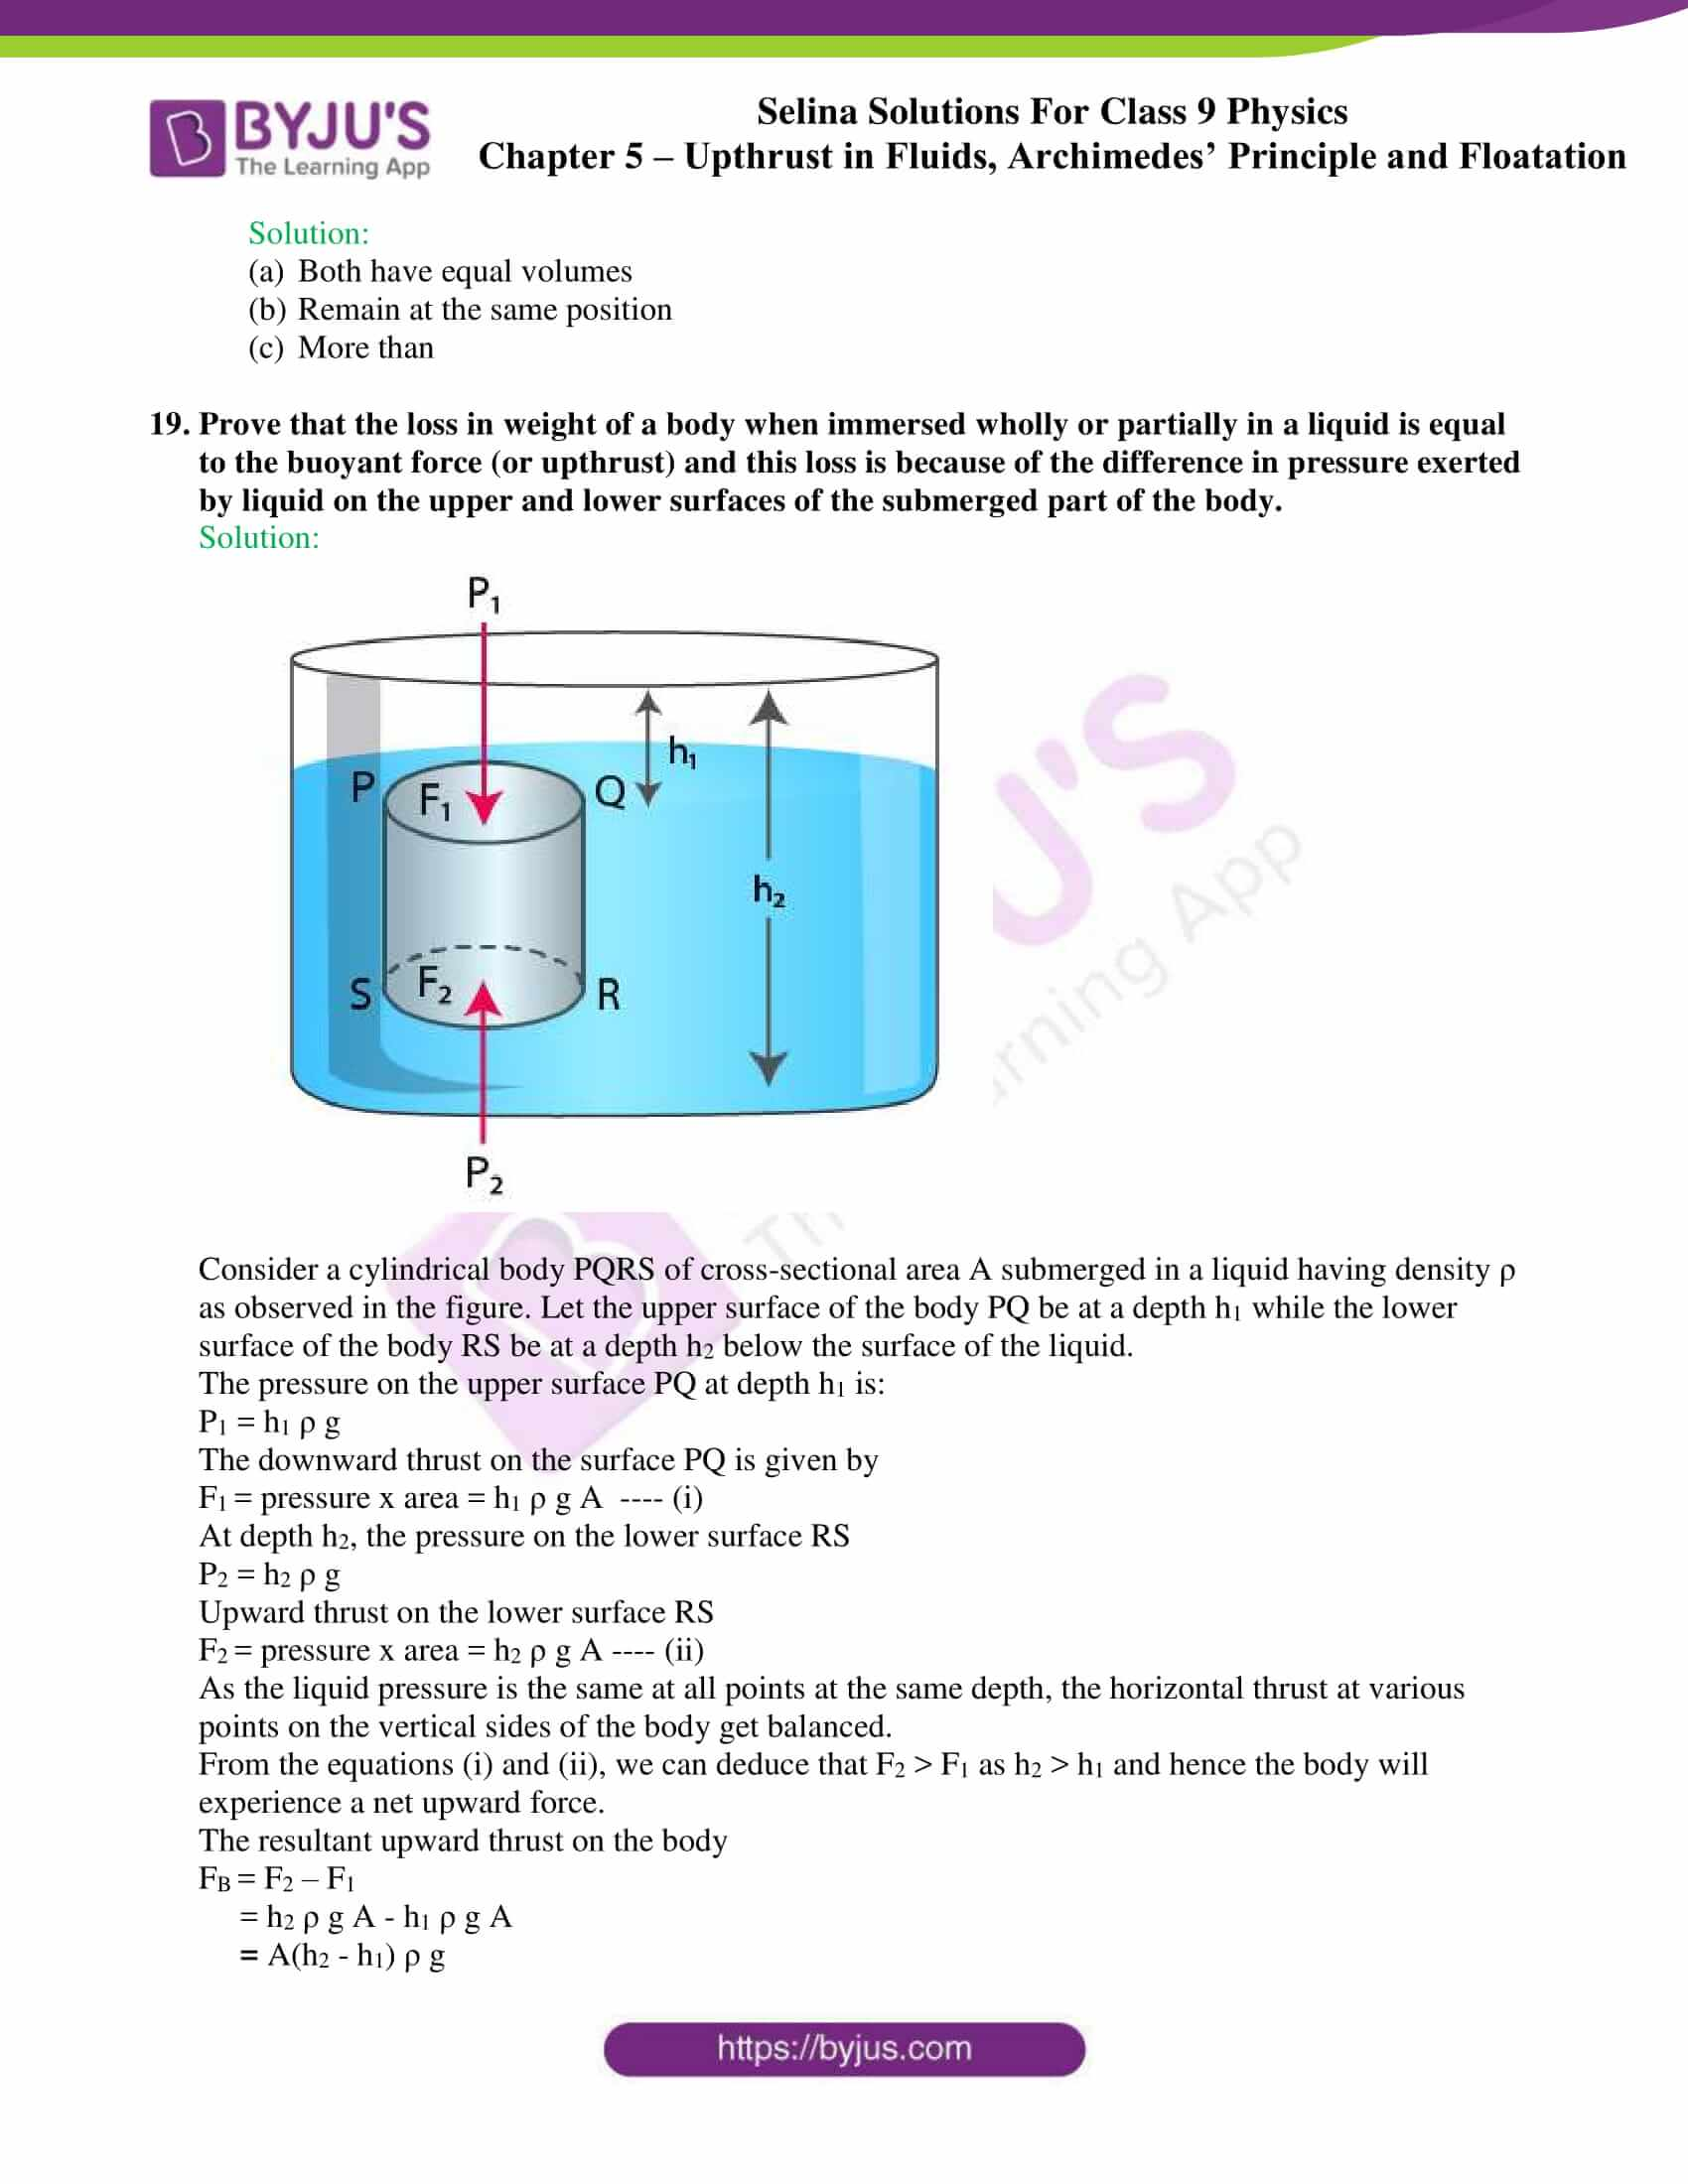 selina solutions class 9 physics chapter 5 part 05